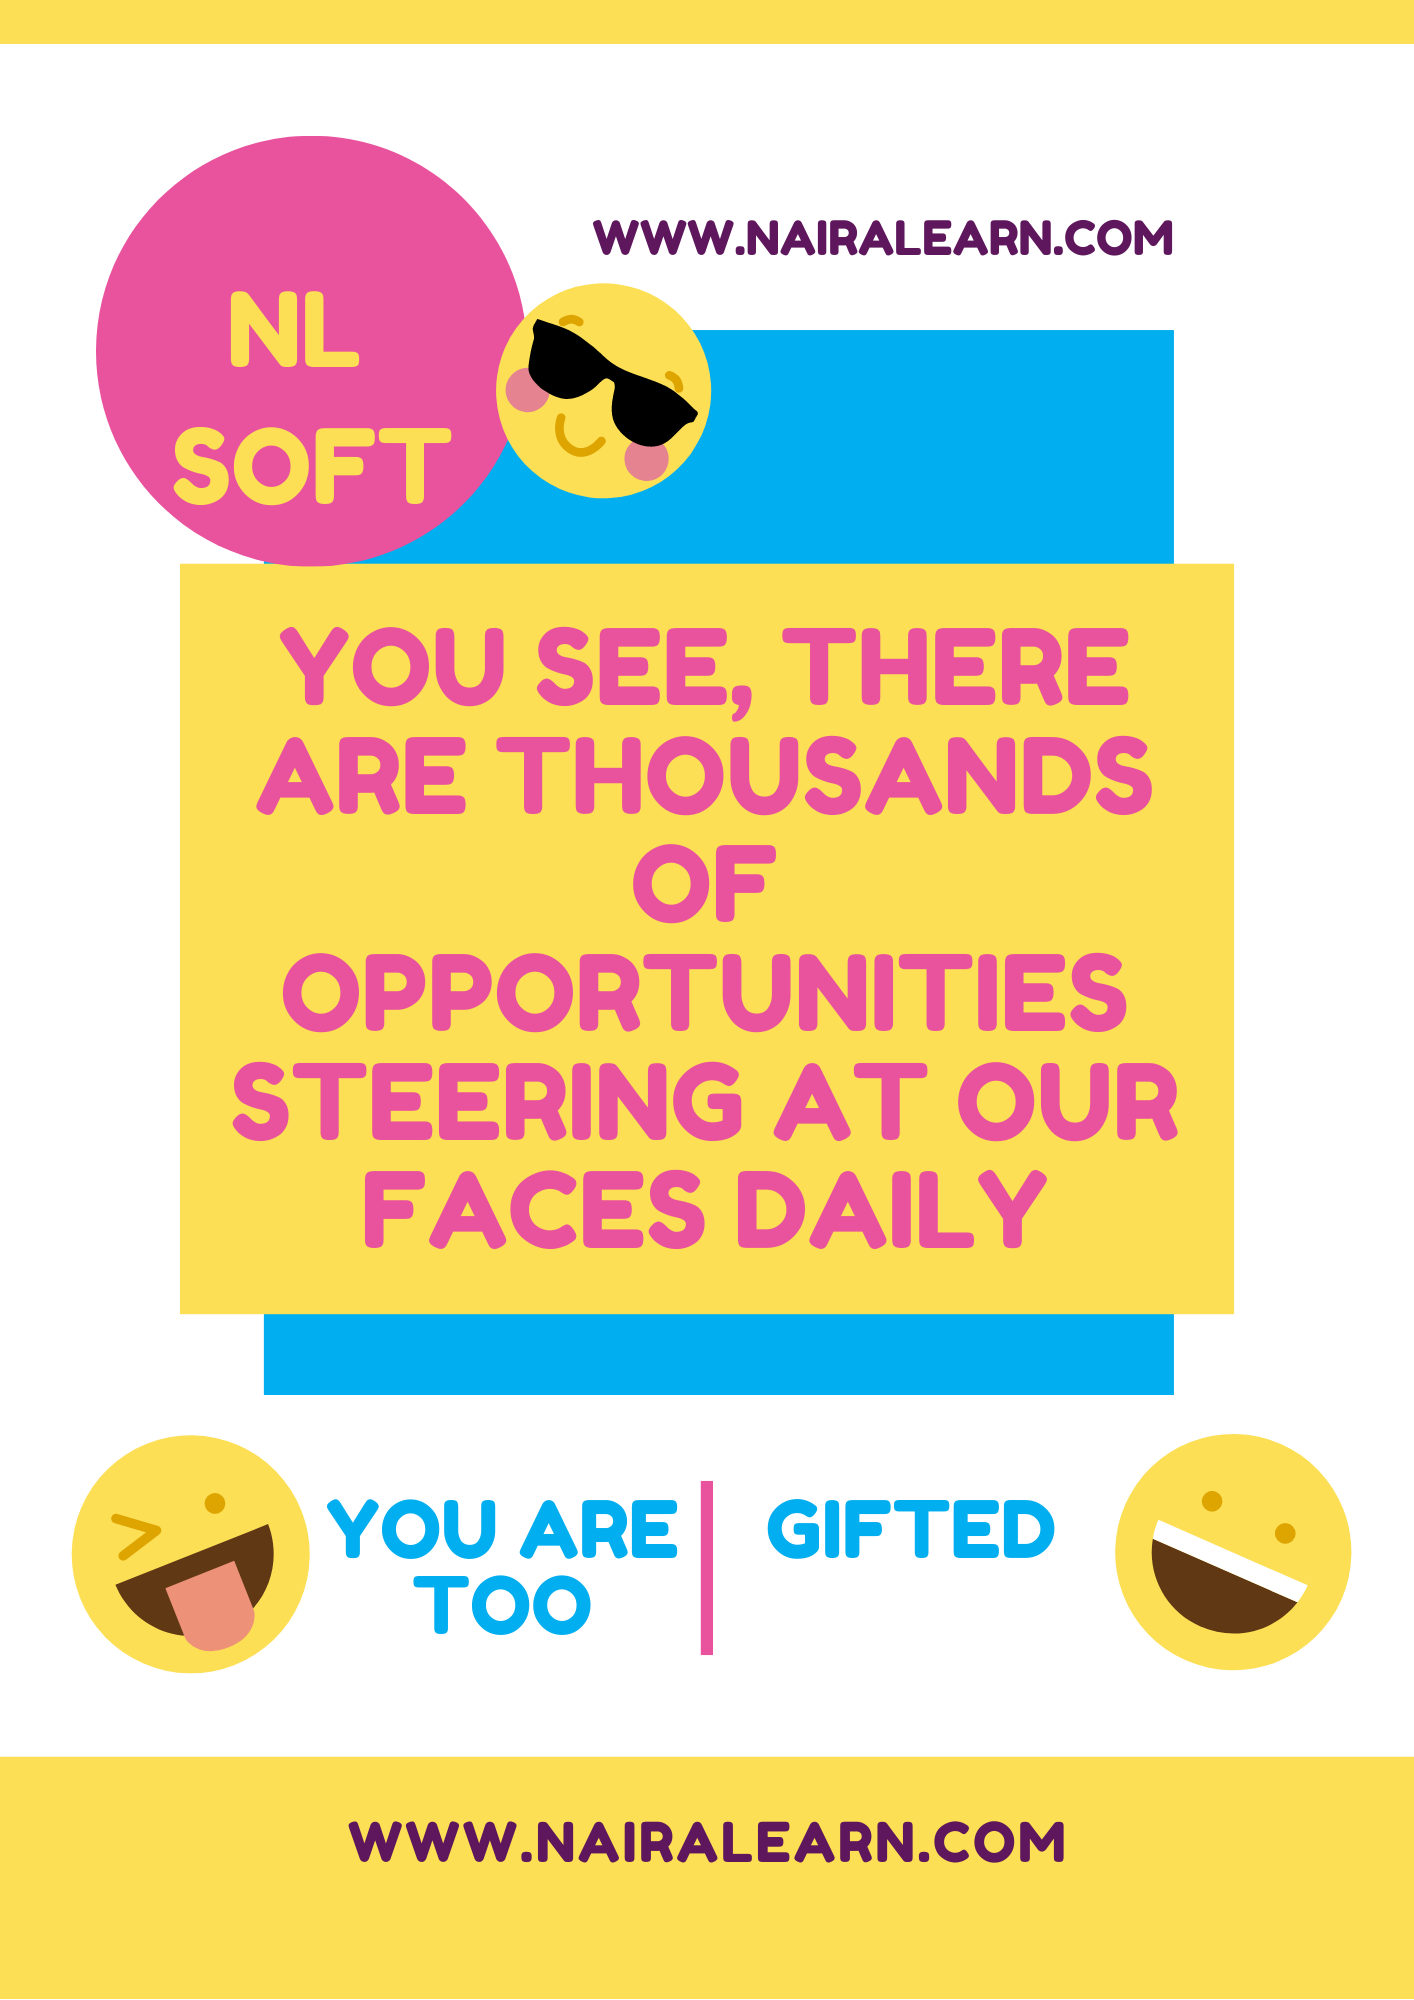 You see, there are thousands of opportunities steering at our faces daily